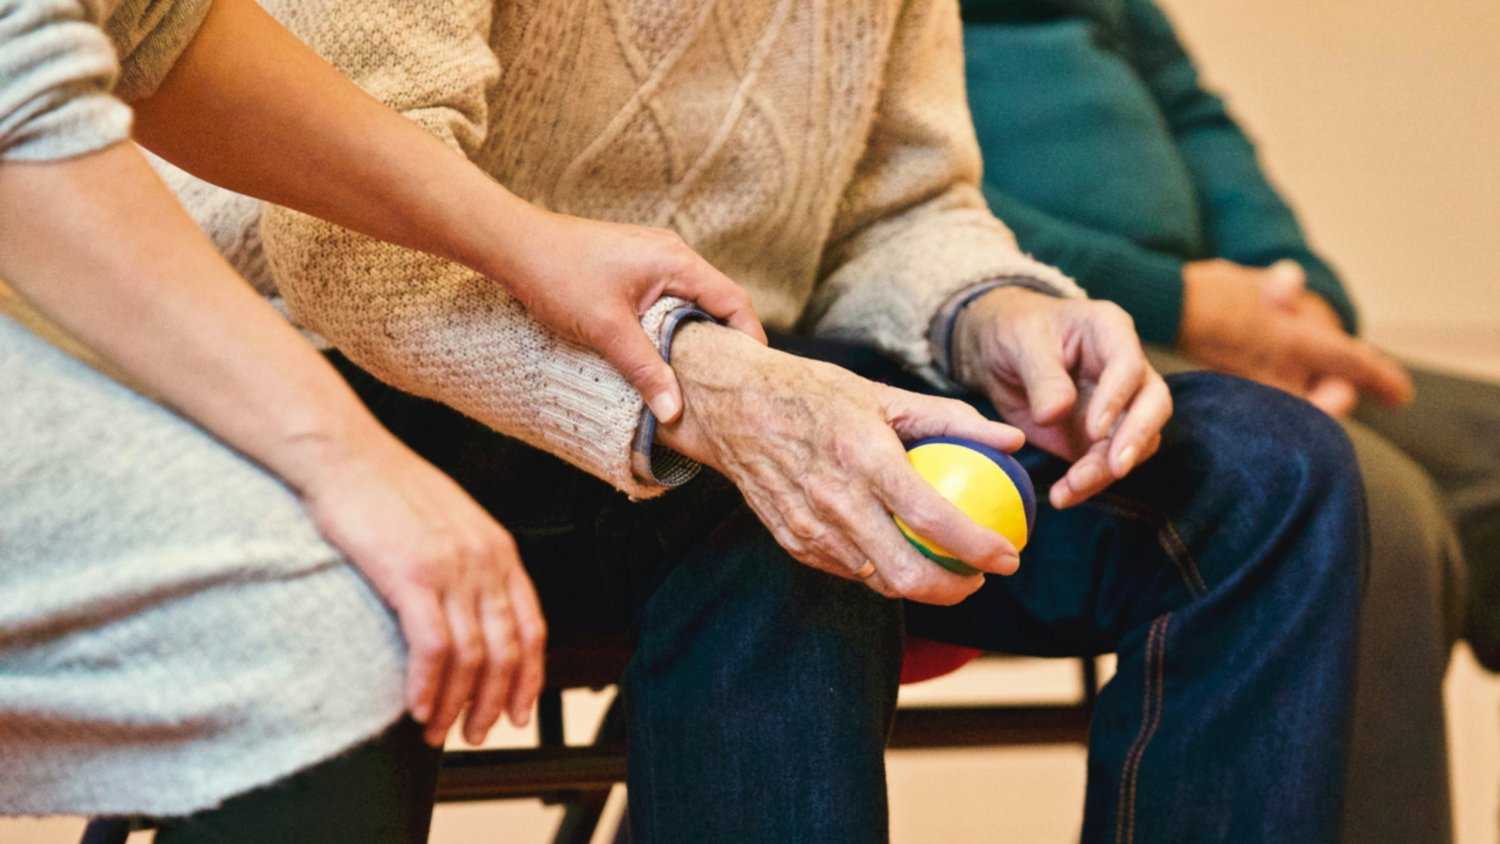 Healthy and active aging